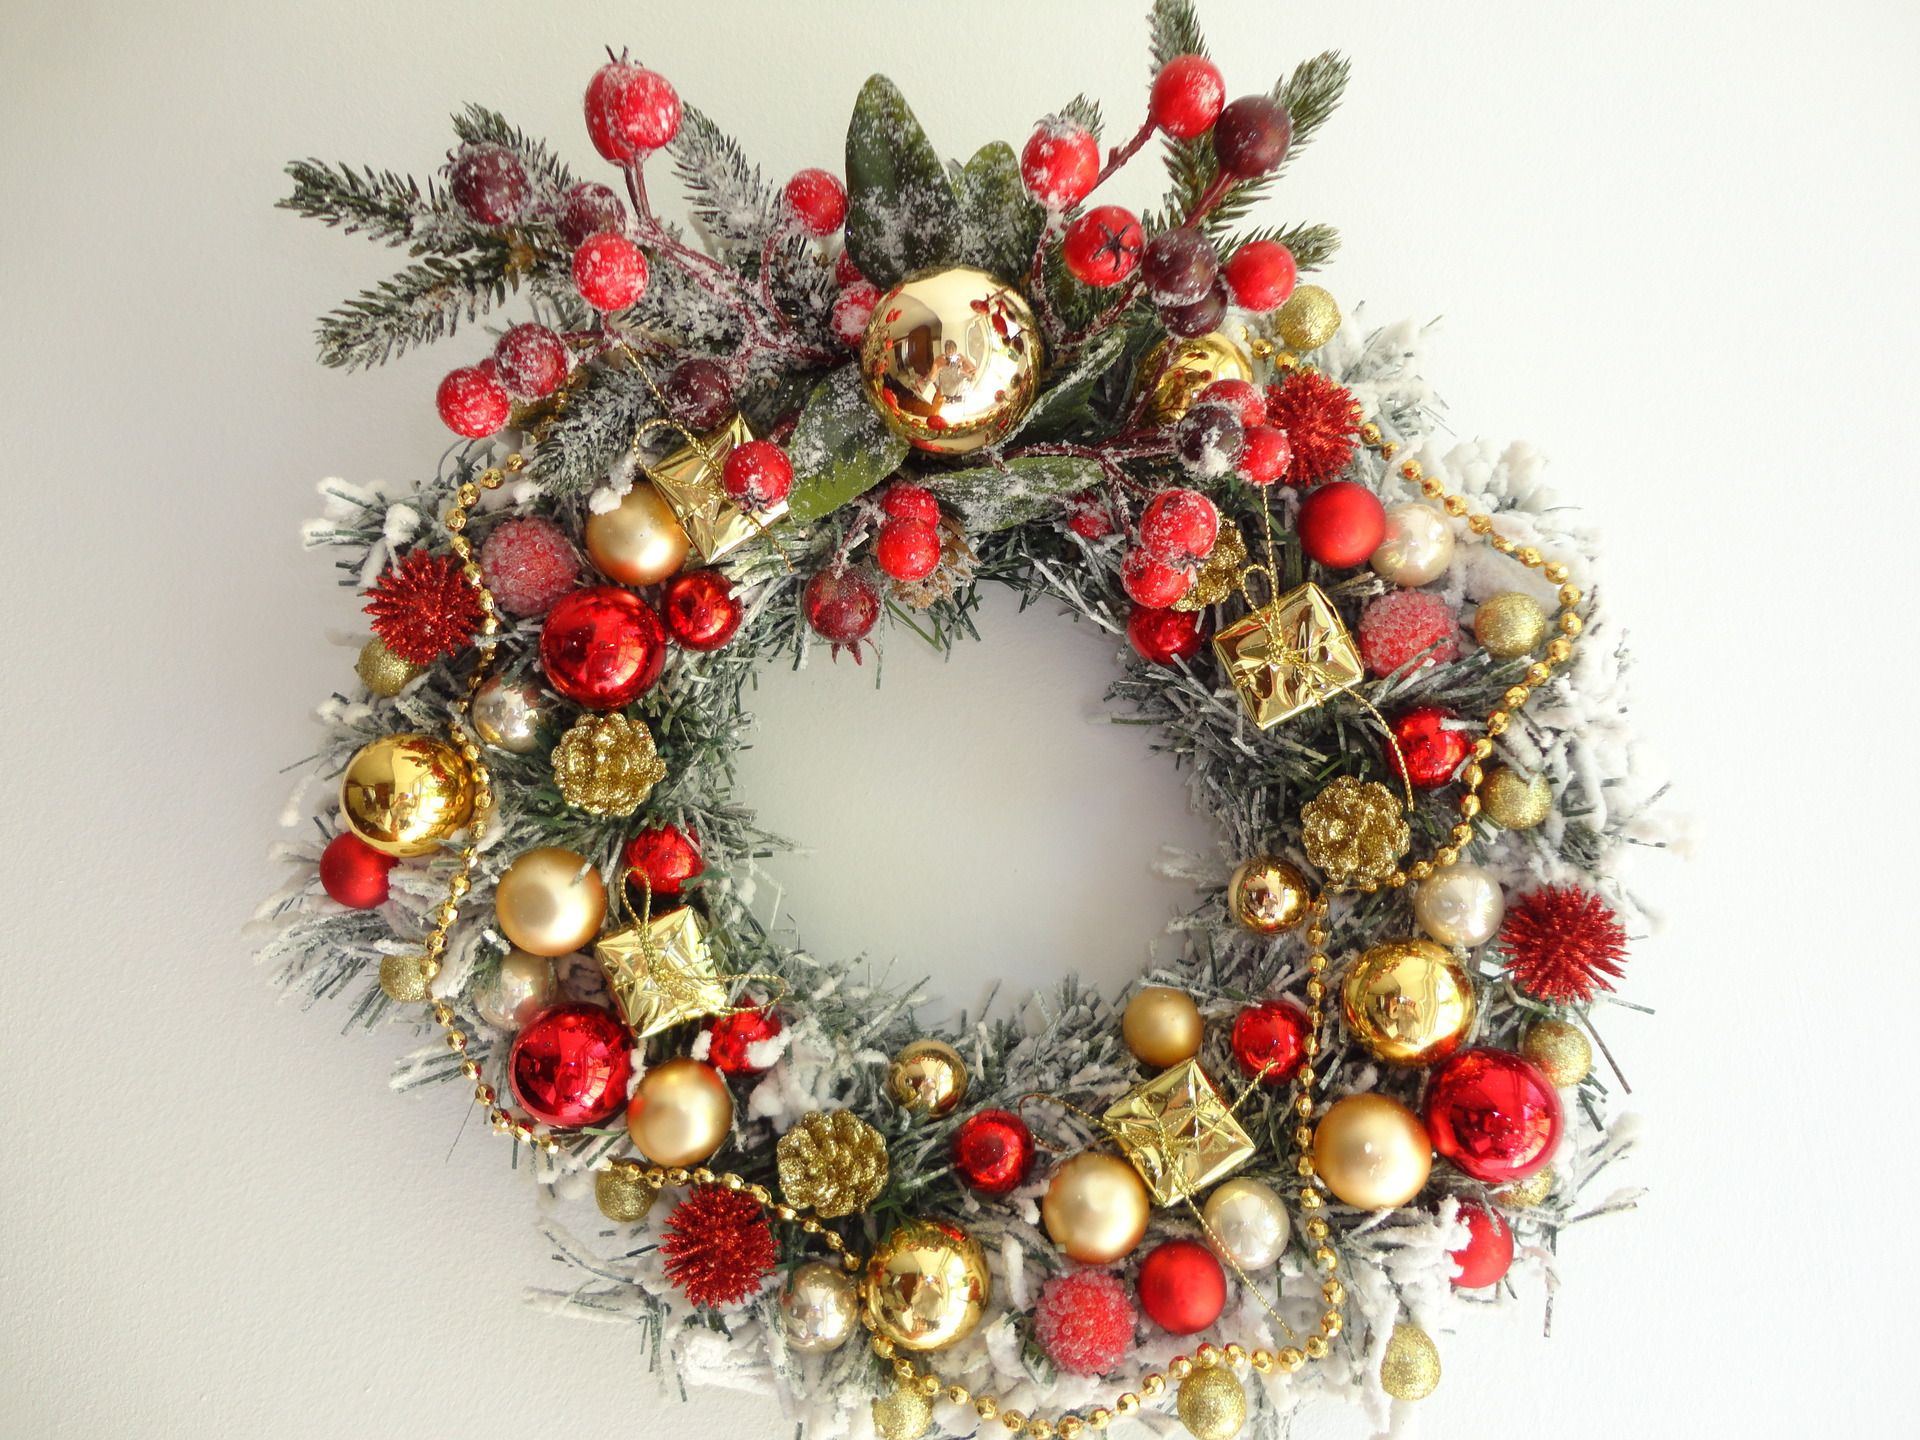 Couronne de no l pour porte d 39 entr e couronne de l 39 avent for Decoration porte d entree noel